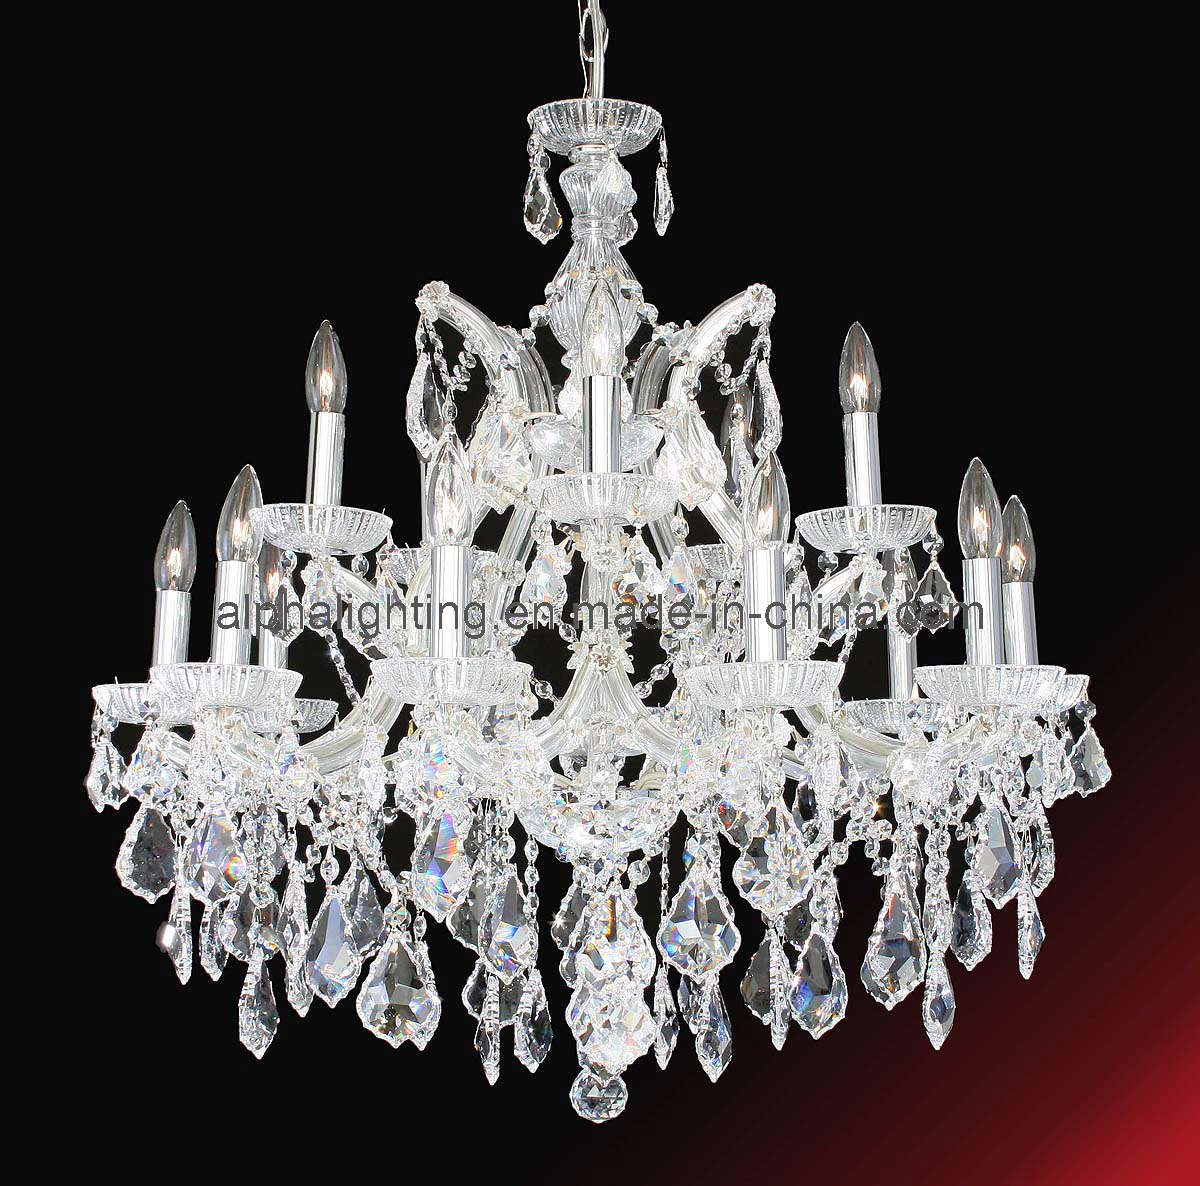 Wrought Iron and Crystal Chandelier | Chandelier Crystals | Crystal Chandelier Ceiling Fan